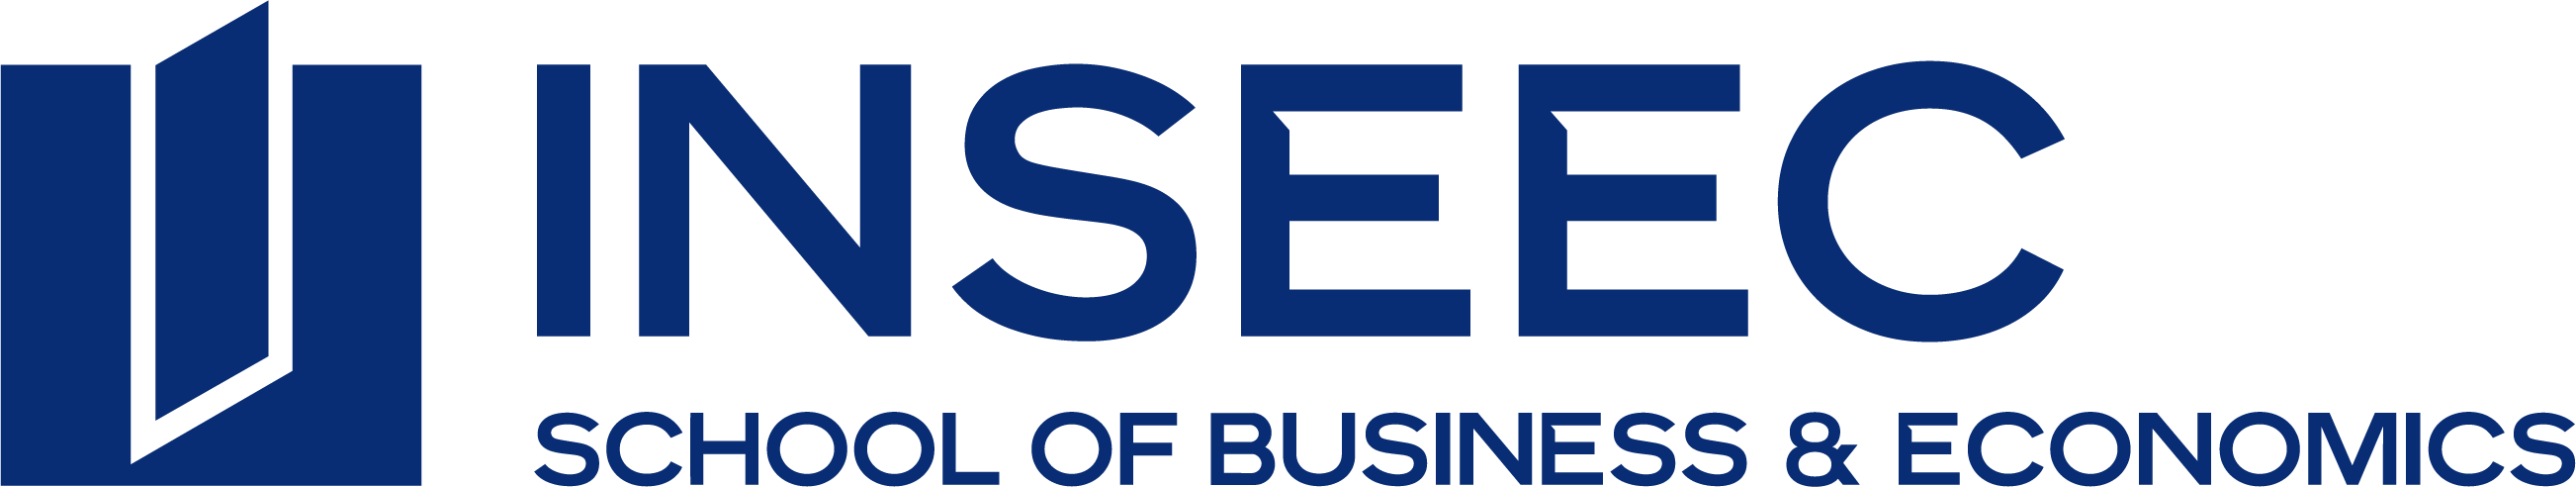 Logo de INSEEC School of Business & Economics